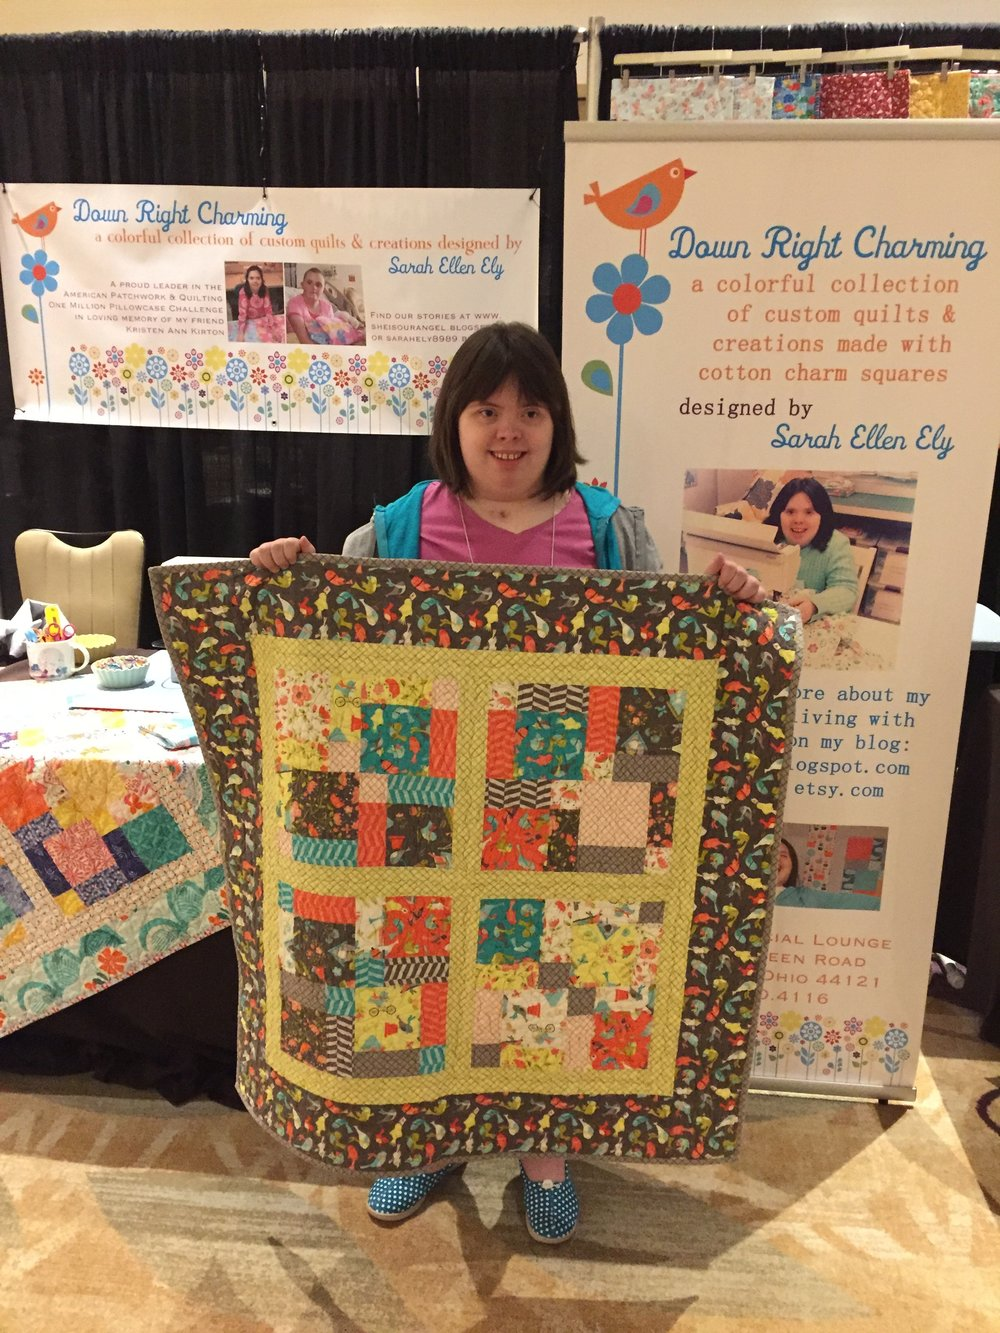 Down Right Charming  features colorful collection of custom quilts and creations designed by Sarah Ellen Ely.